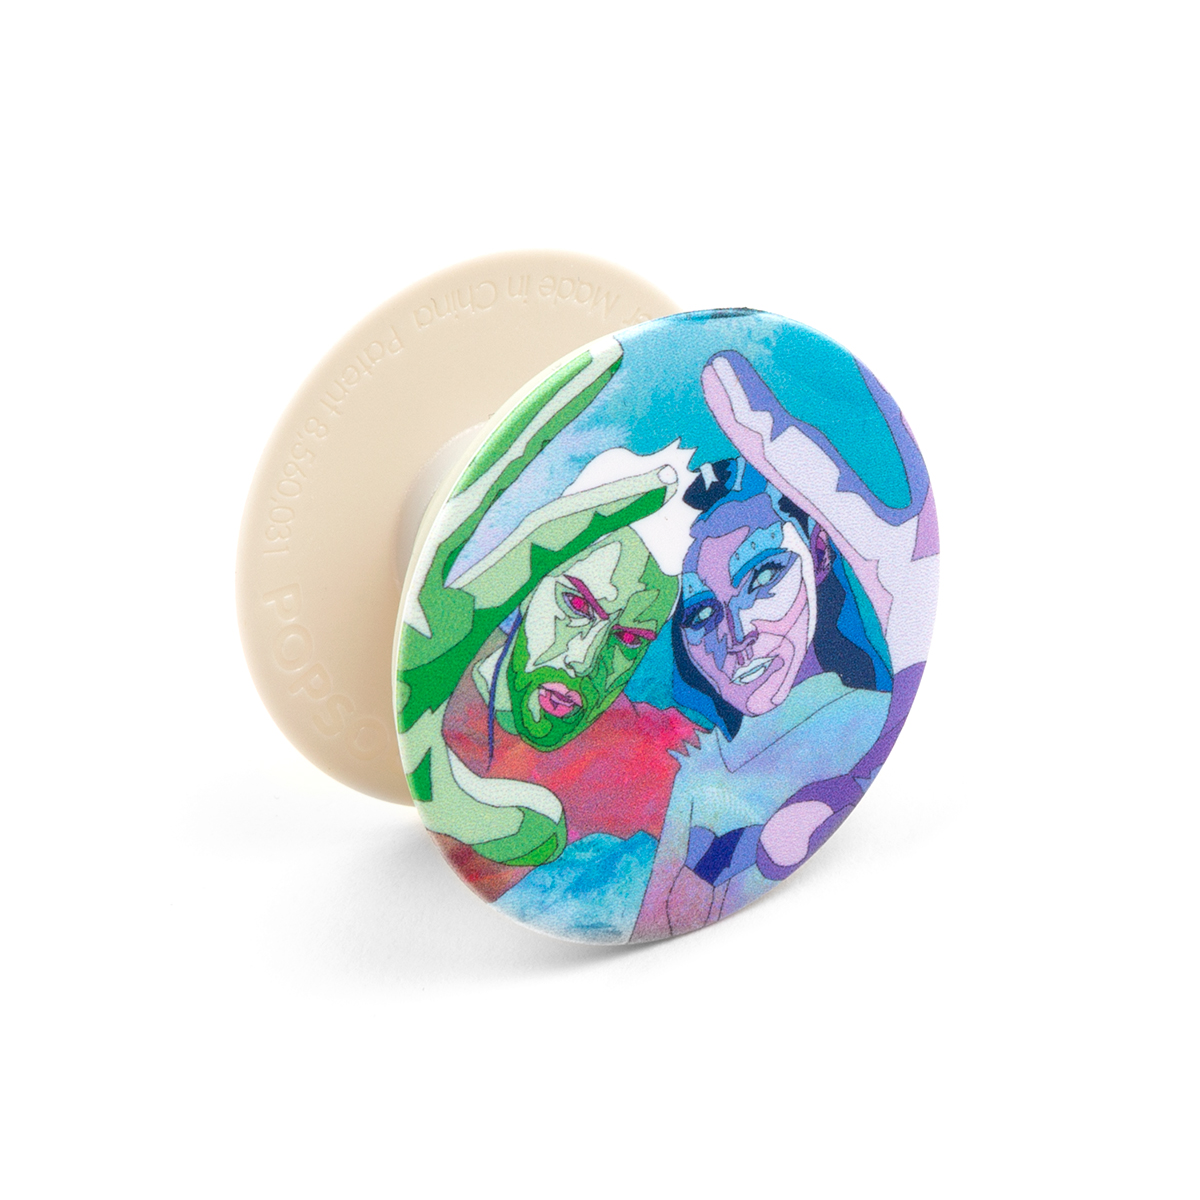 SOFI TUKKER PopSocket Phone Accessory